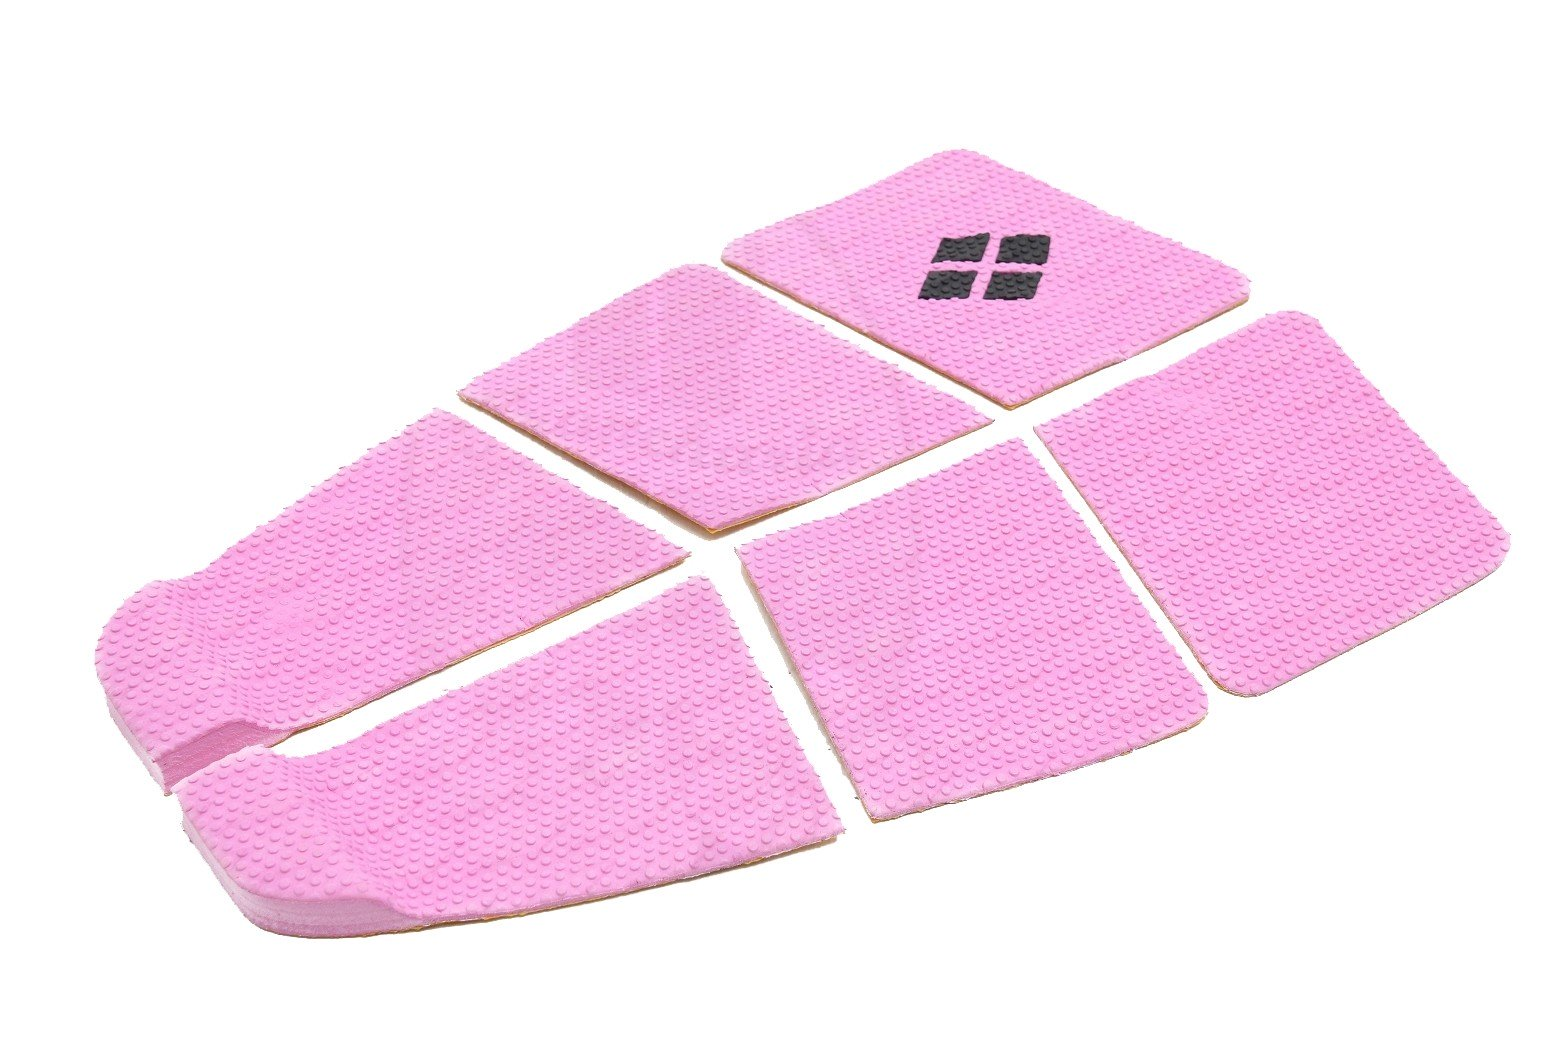 Deck Surf 6 Partes Rubber Sticky Rosa | Prancharia